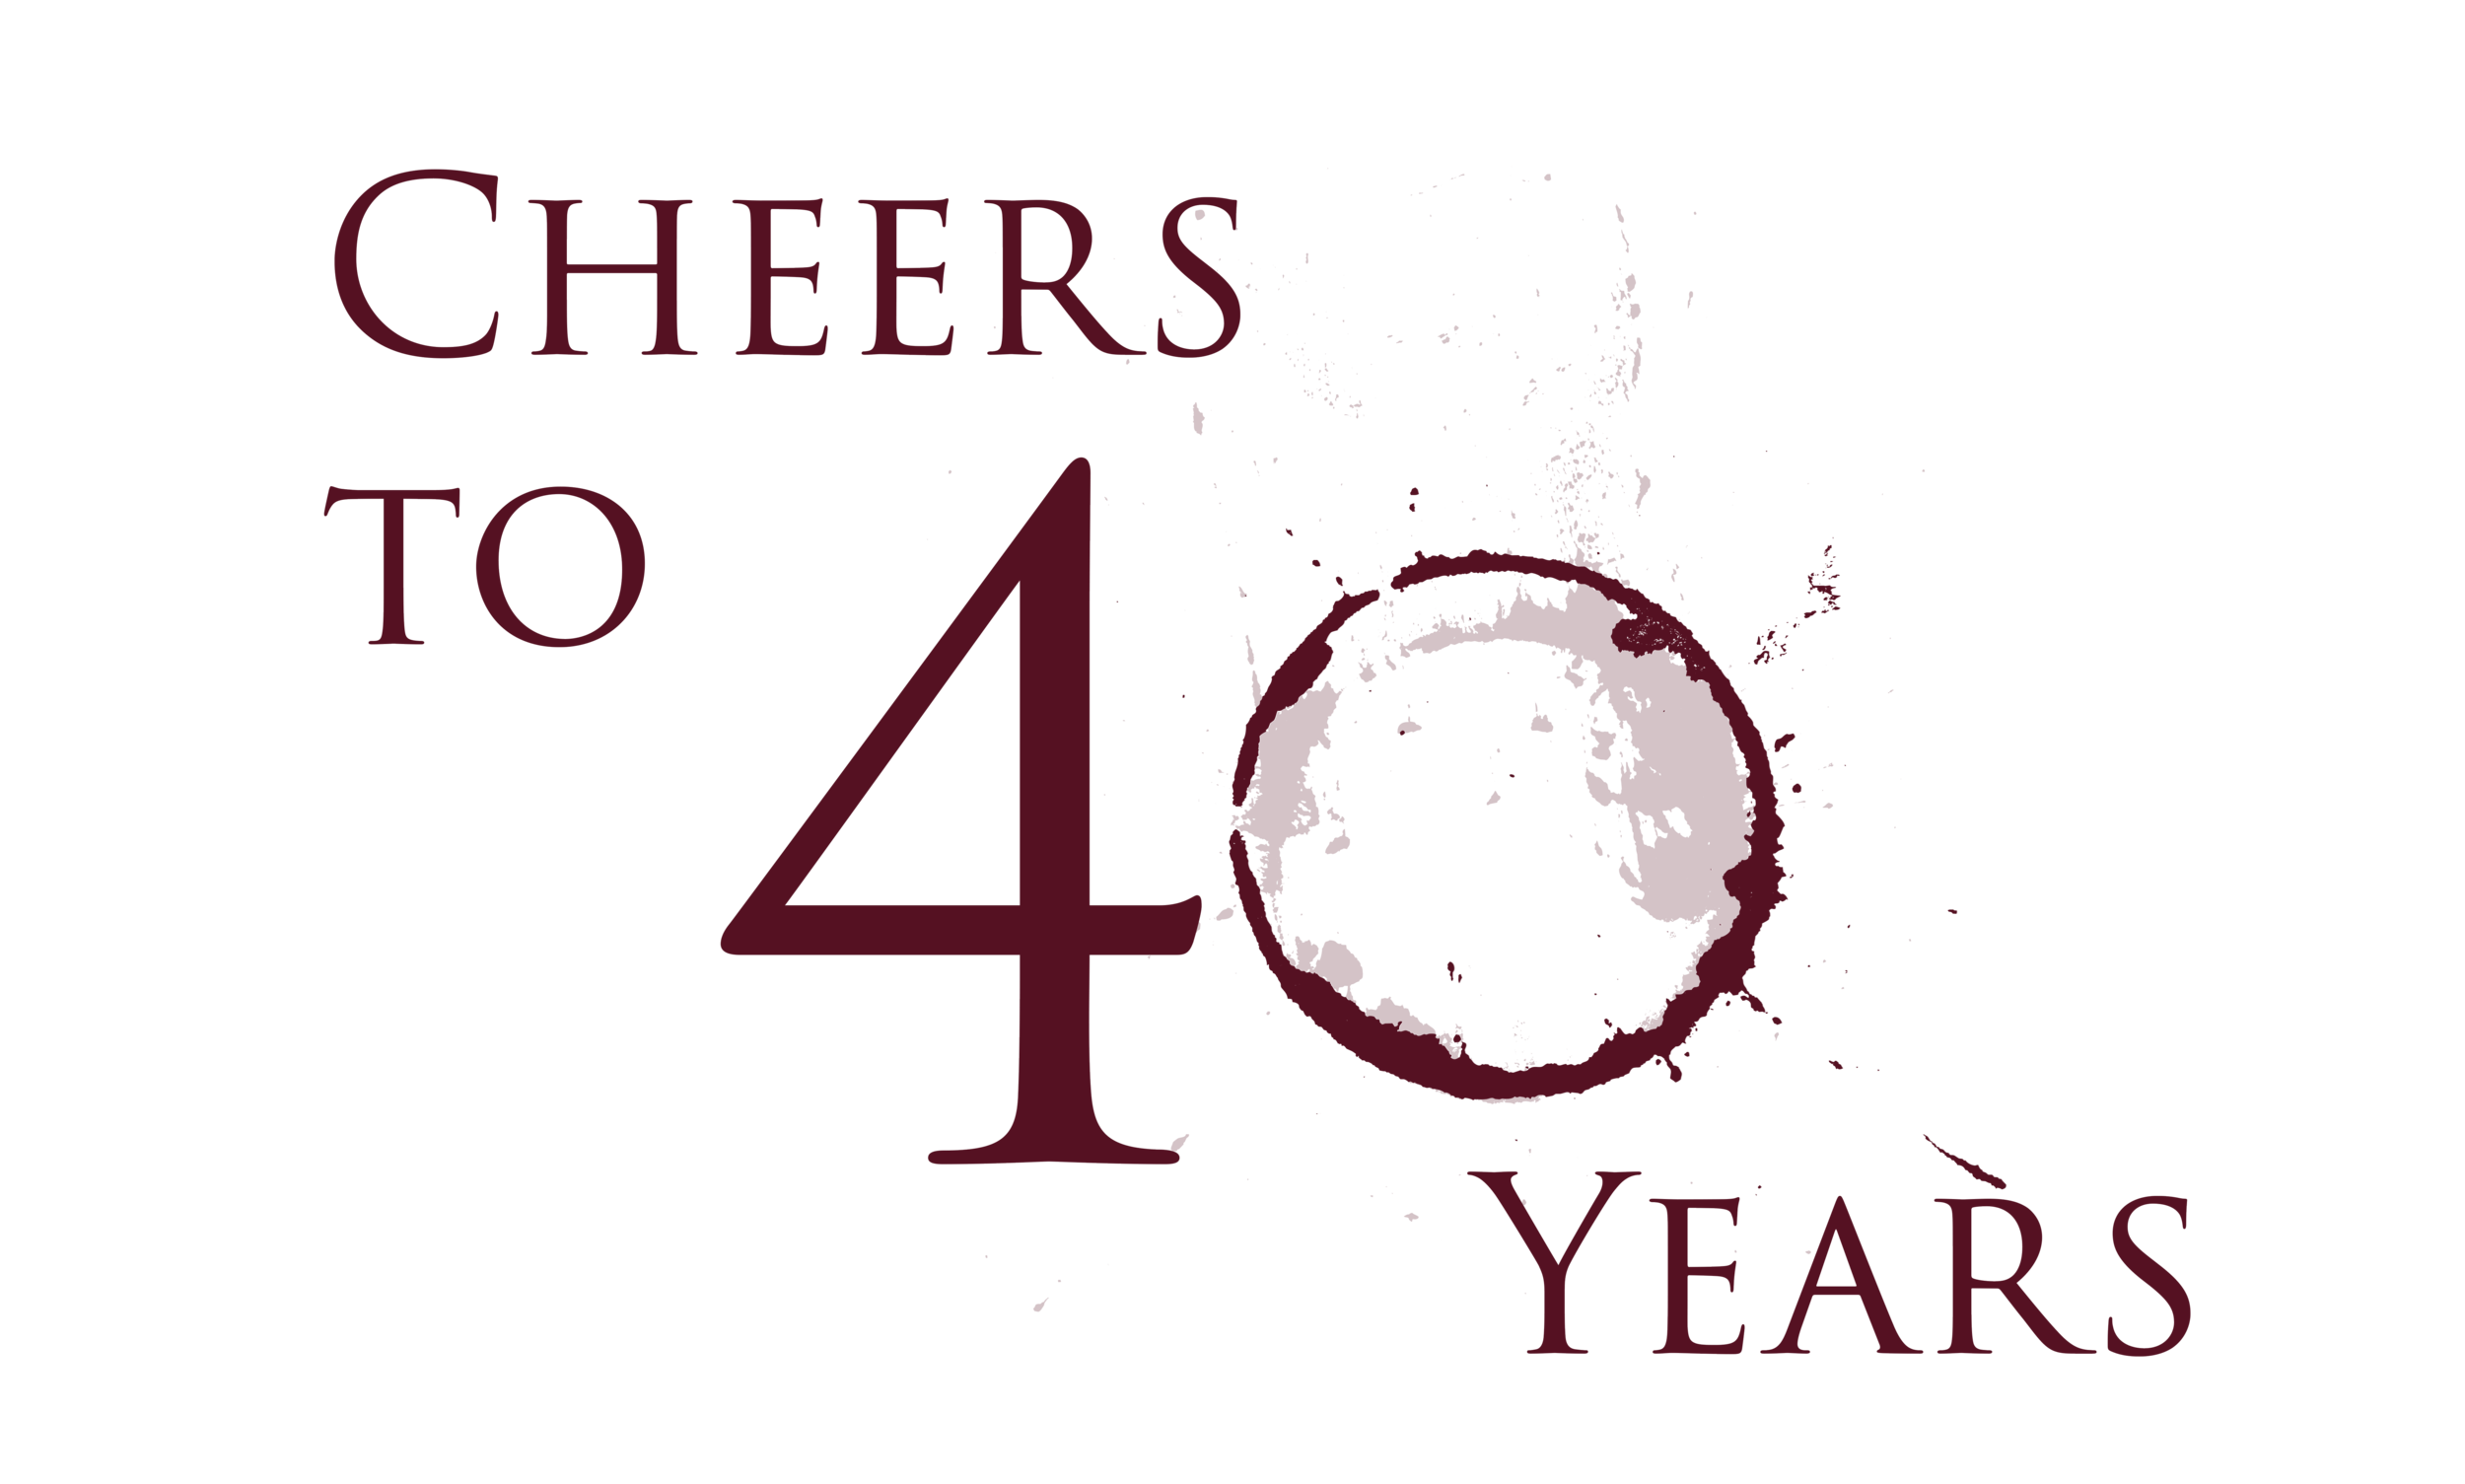 19.8.19-Cheers-to-40-Years-website.png